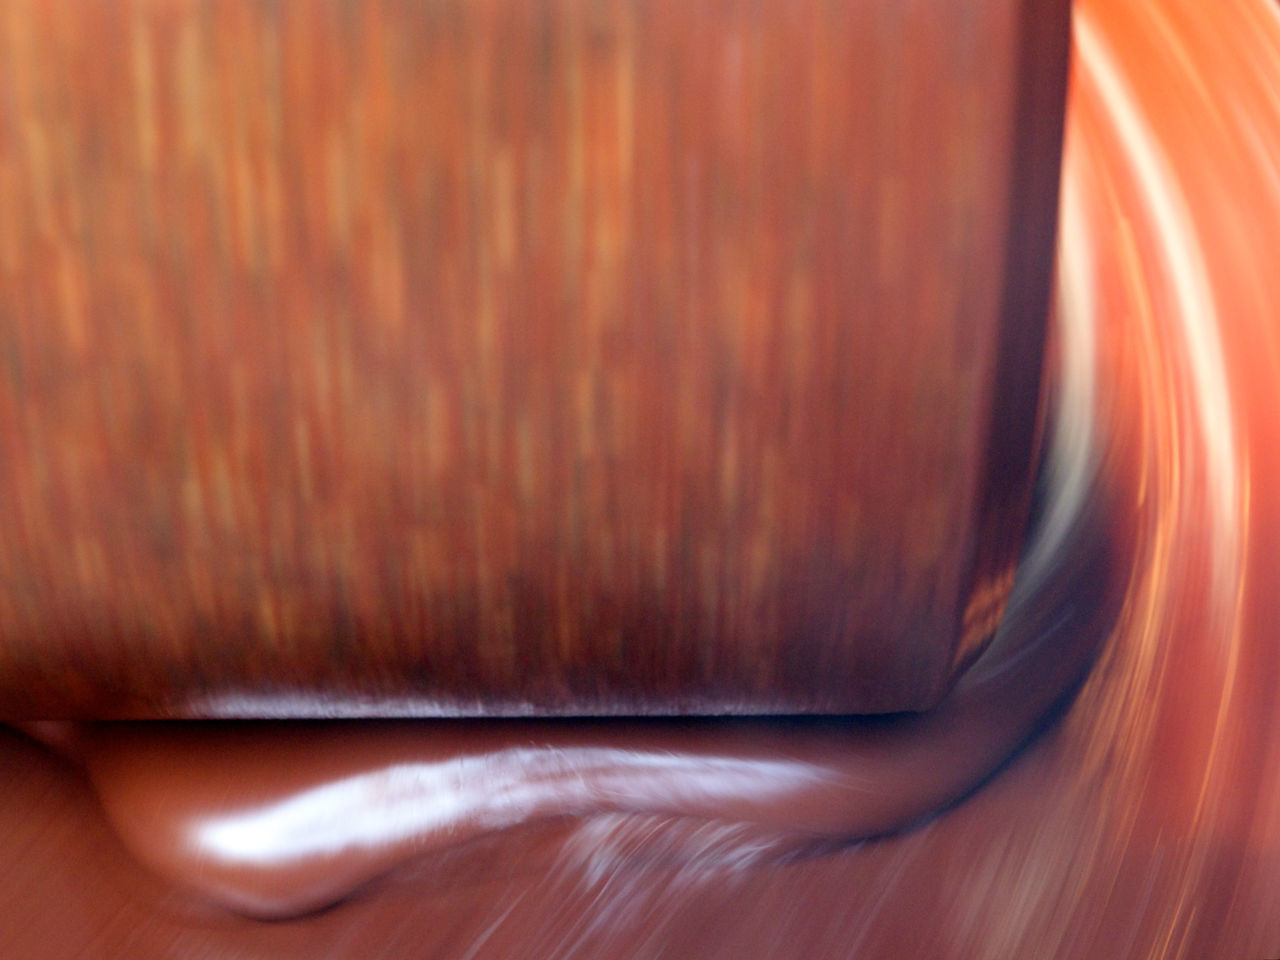 Close-up of chocolate in machine Abstract Backgrounds Brown BURR Chocolate Chocolate Machine Detail Full Frame Grindstone Ideas Indoors  Motion Pattern Production Process Shiny Sweet Textile Textured